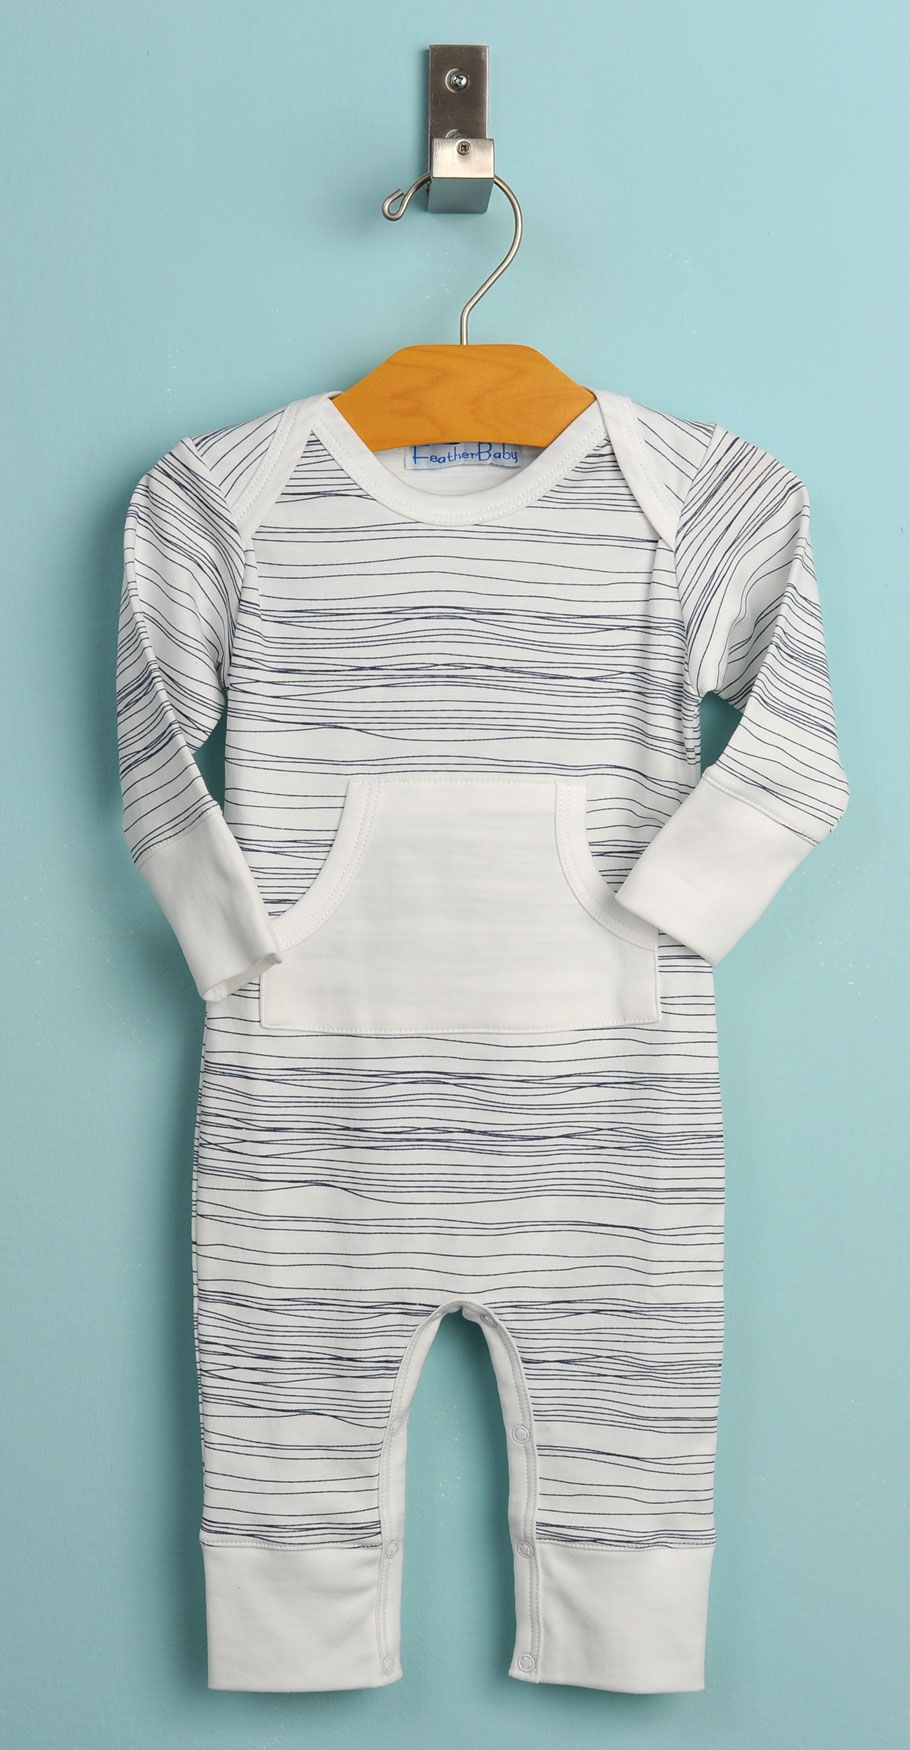 Feather Baby - Organic Baby Clothes, Designer Baby Clothes ...